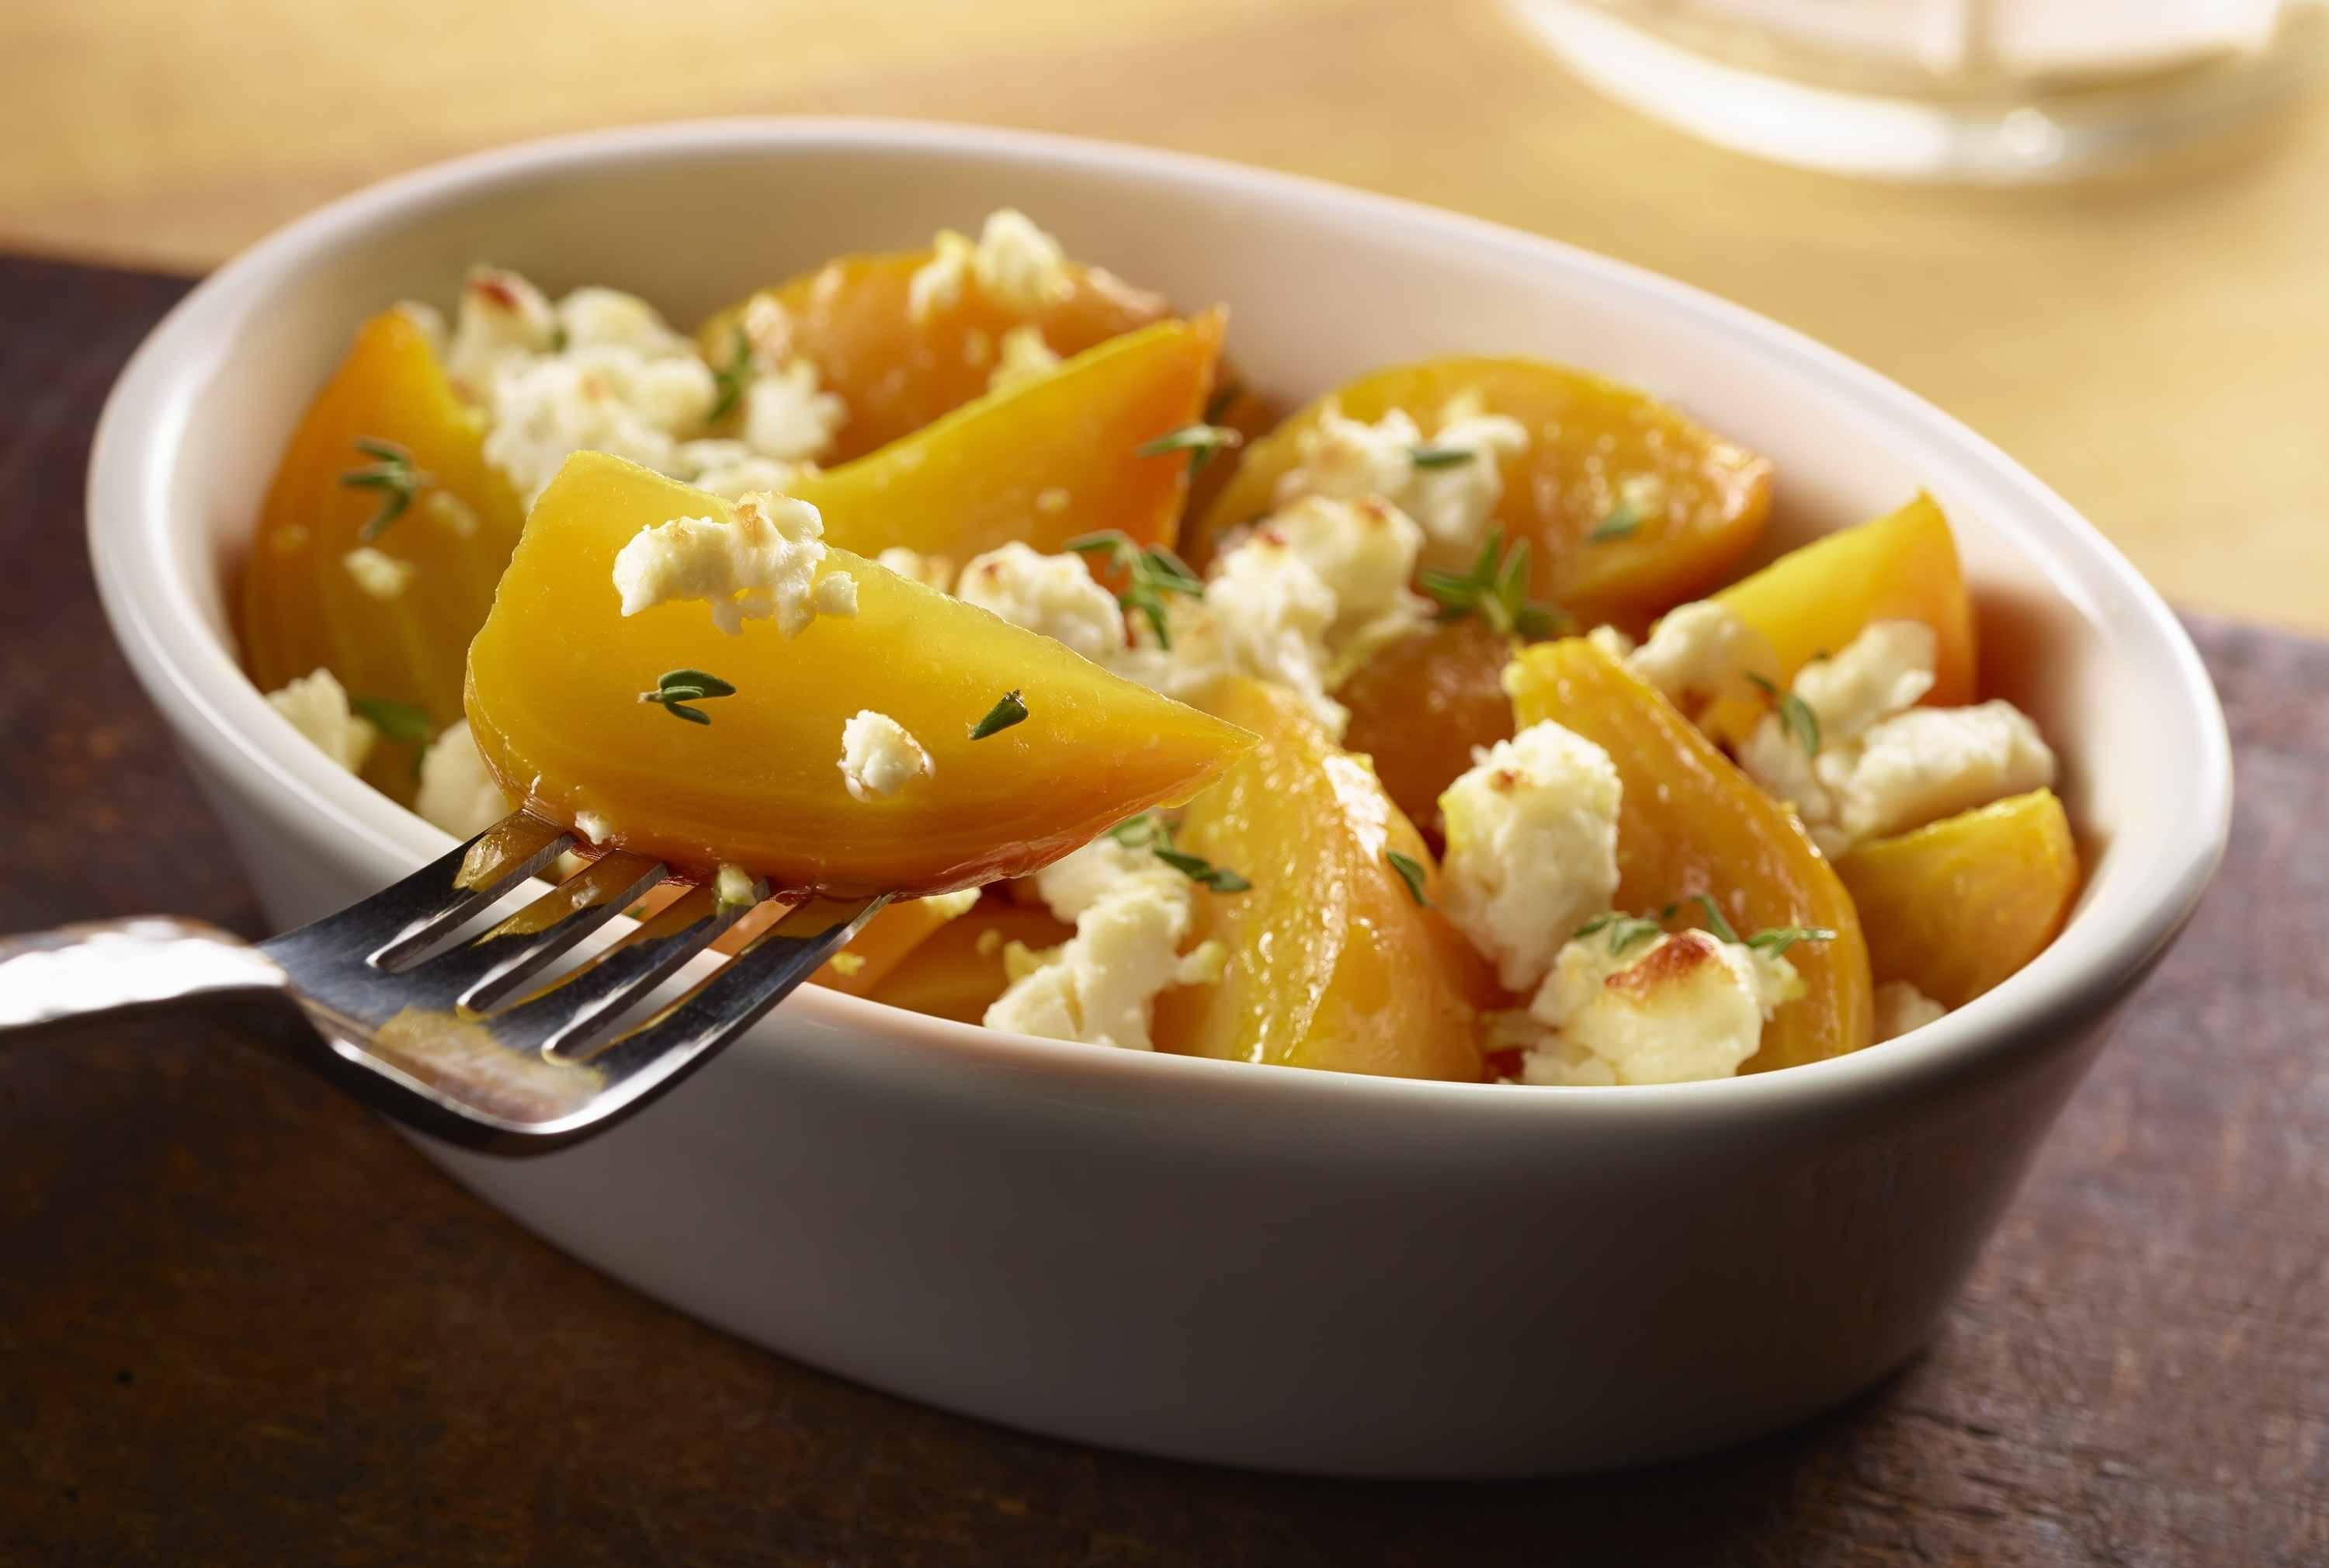 Roasted golden beets with melted goat cheese recently joined the LongHorn Steakhouse's side dishes. It costs $3.99.